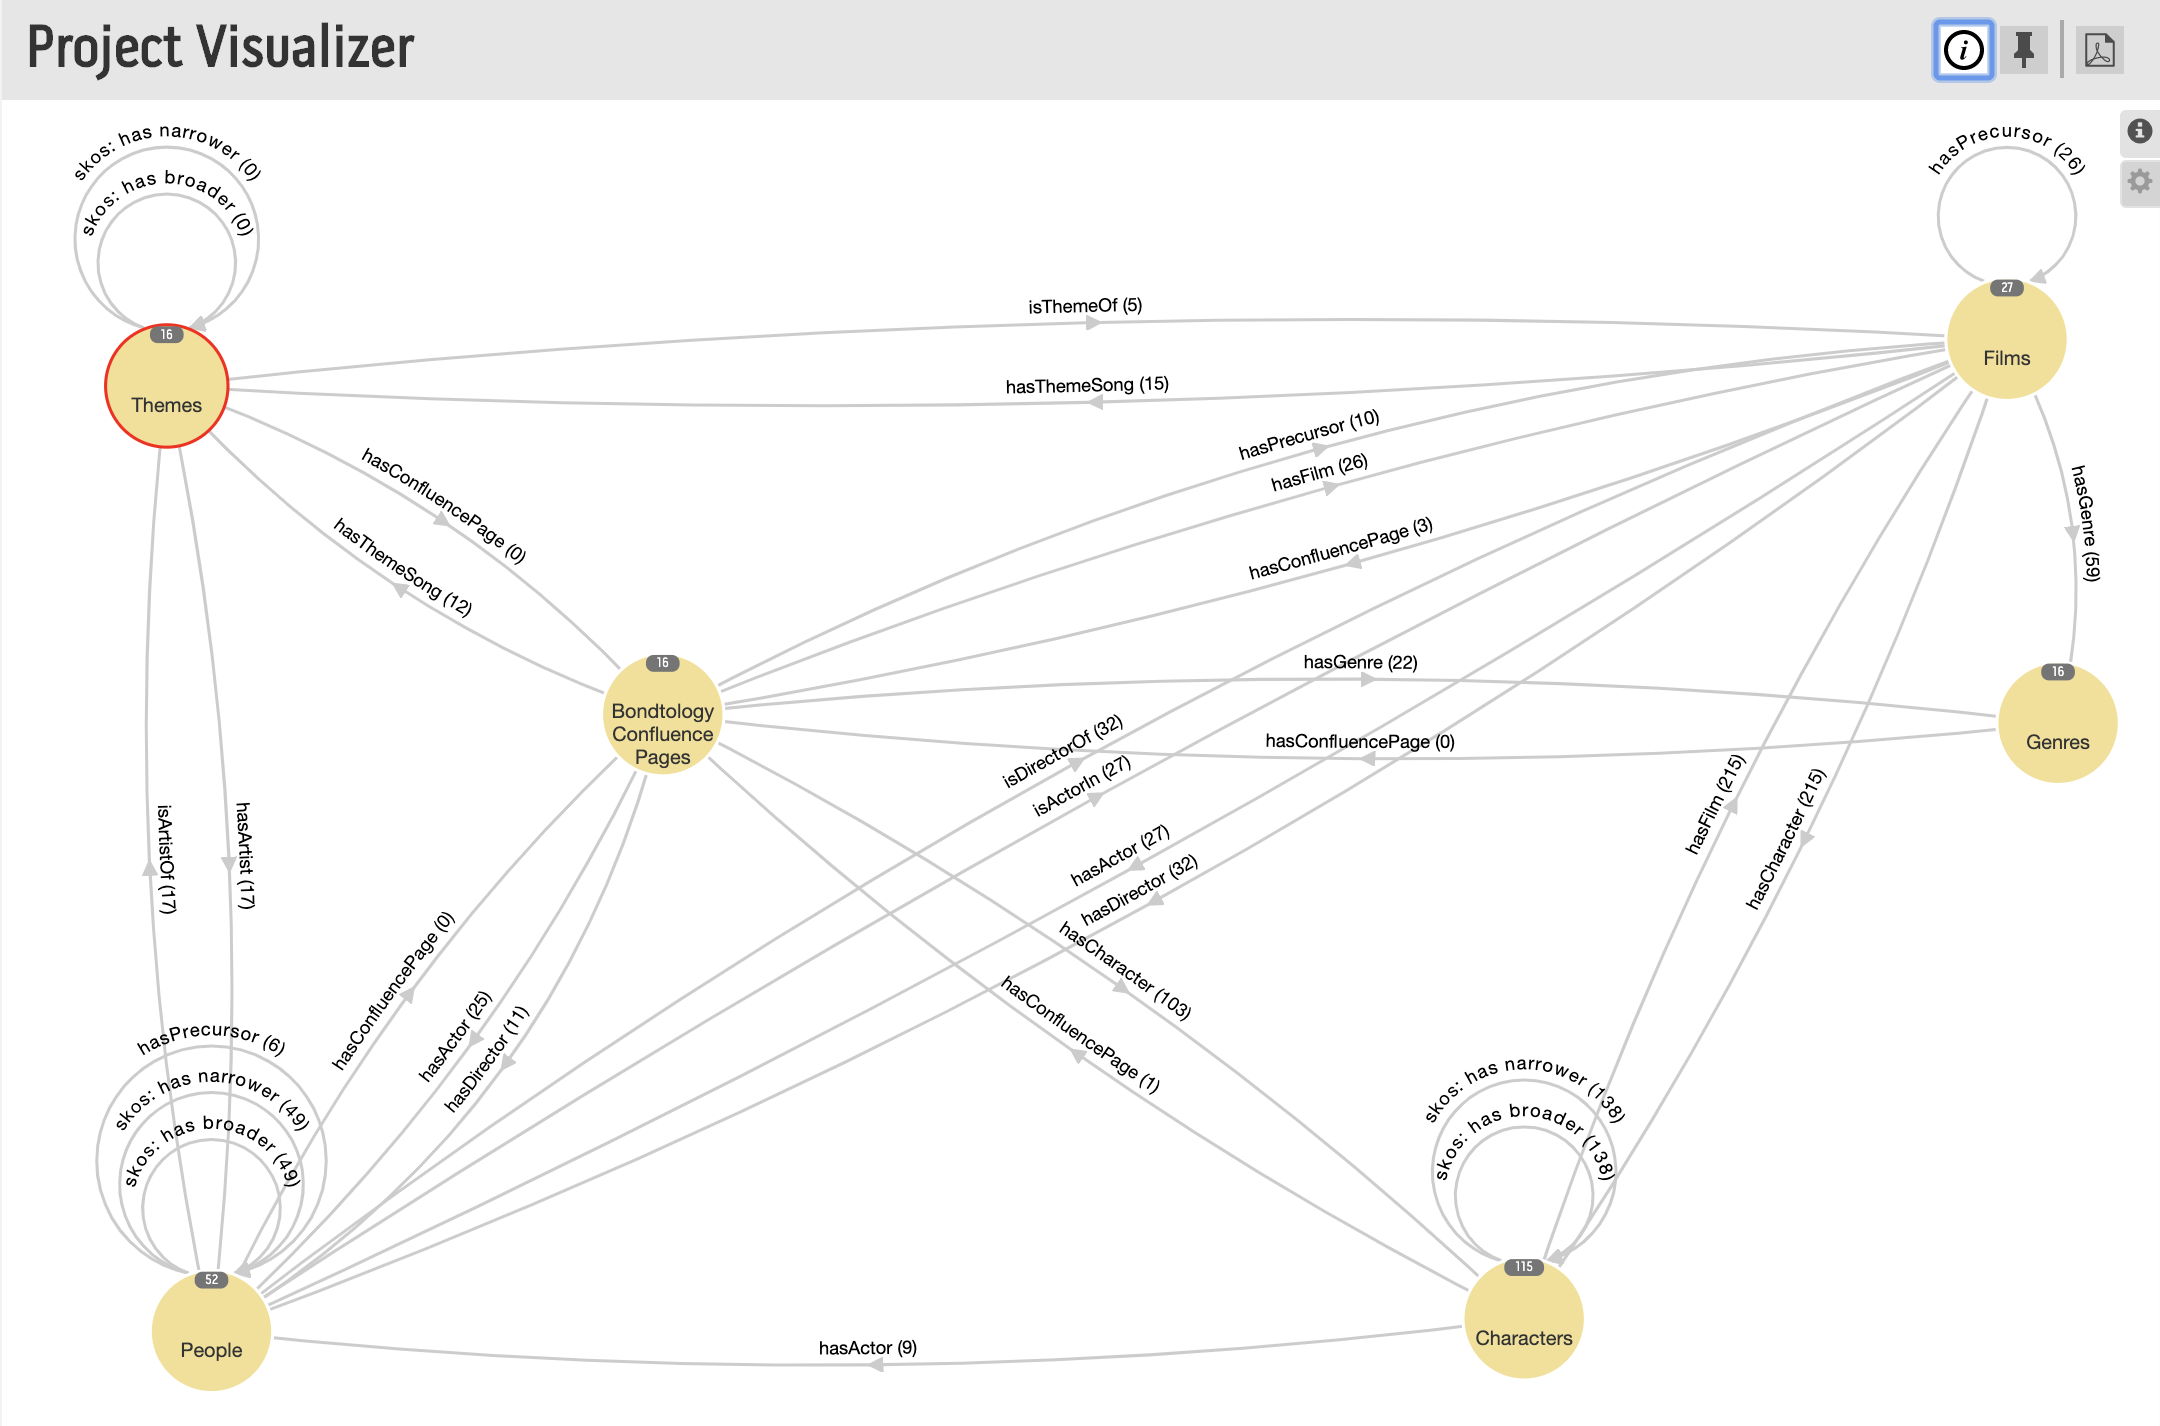 Knowledge Management, Knowledge Graphs, and Ontologies